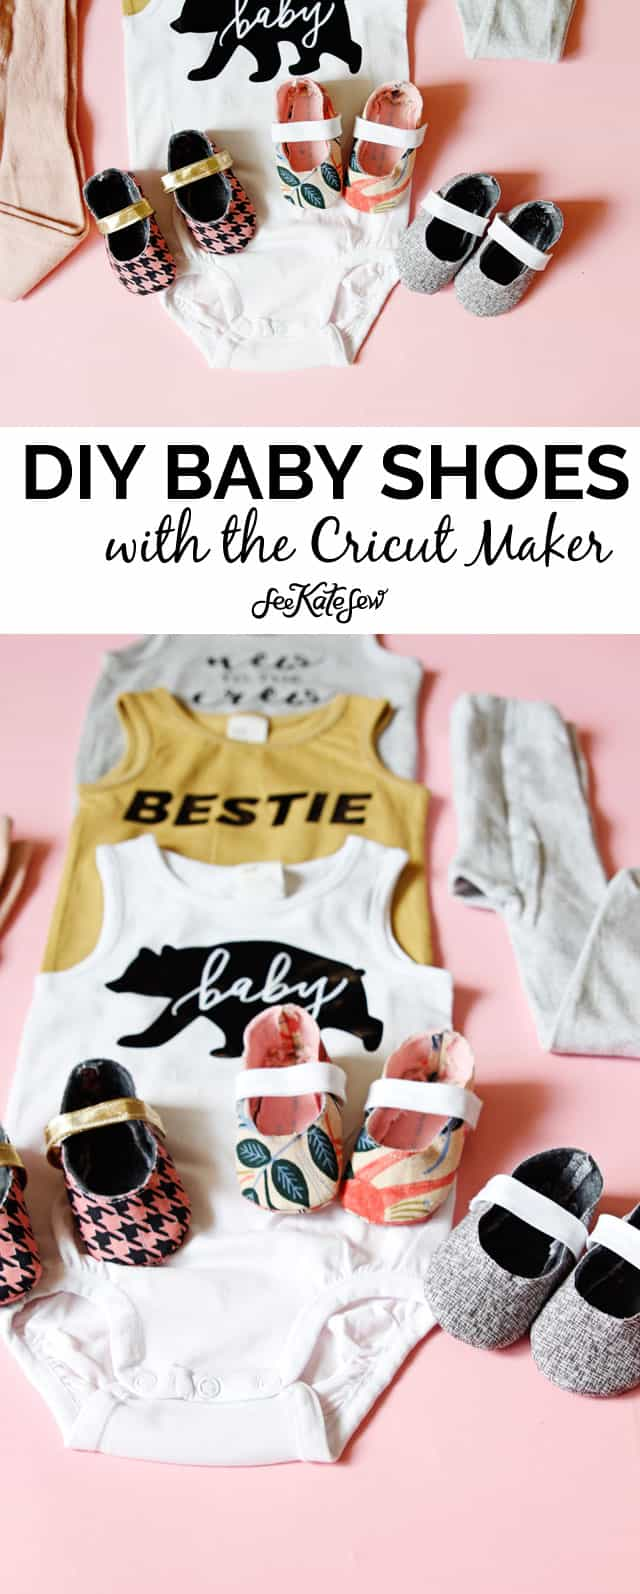 Baby Shoes Pattern with Cricut and Simplicity | diy baby shoes | diy baby clothing | baby clothing patterns | handmade baby clothes | cricut crafts || See Kate Sew #diy #patterns #babyshoes #diybaby #diybabyclothing #diybabyshoes #cricut #cricutdiy